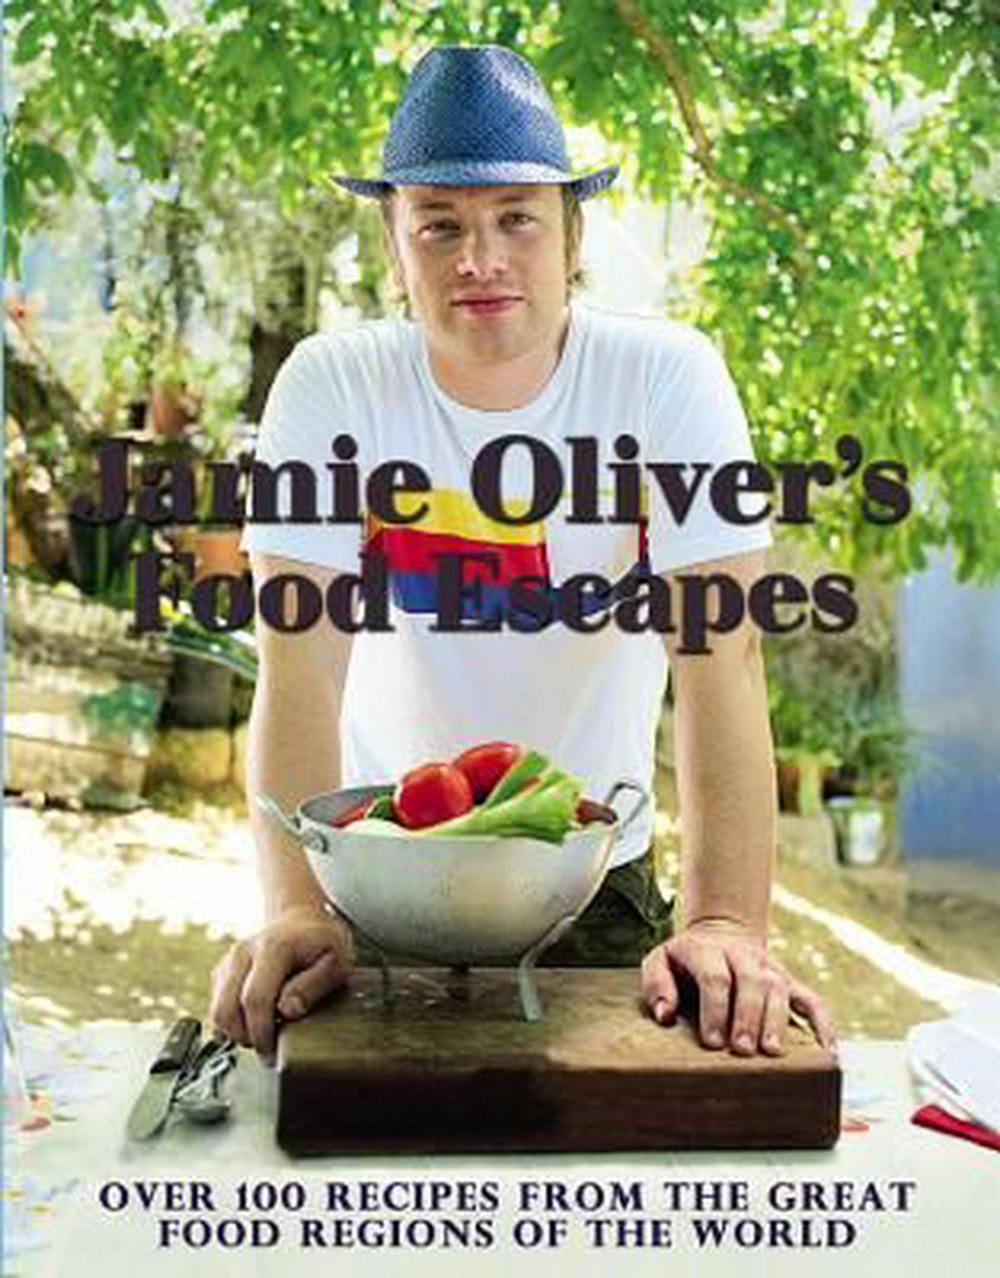 Jamie Oliver's Food Escapes by Jamie Oliver, ISBN: 9781401324414